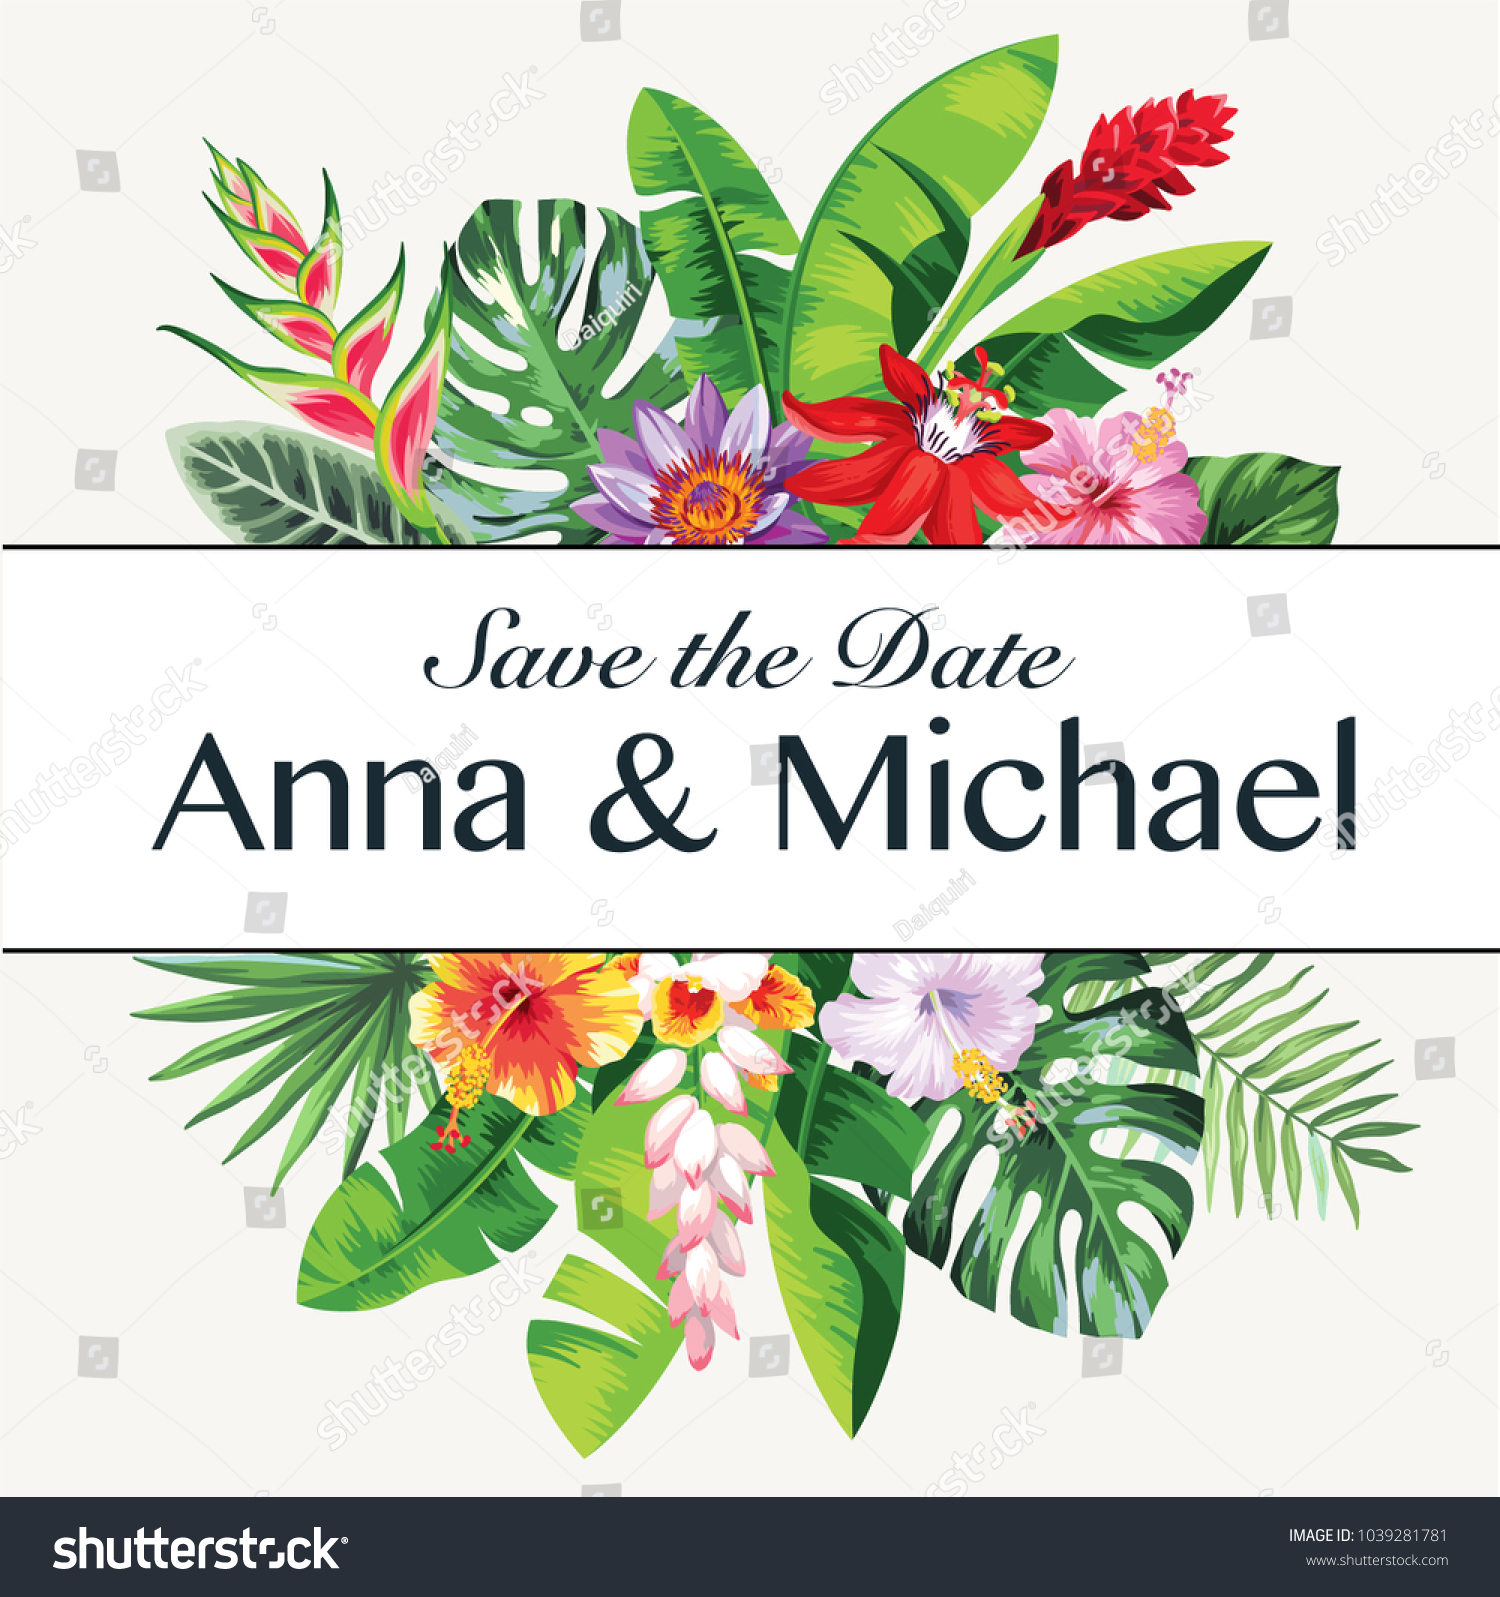 Tropical hawaiian wedding invitation palm leaves stock vector tropical hawaiian wedding invitation with palm leaves and exotic flowers template design vector illustration izmirmasajfo